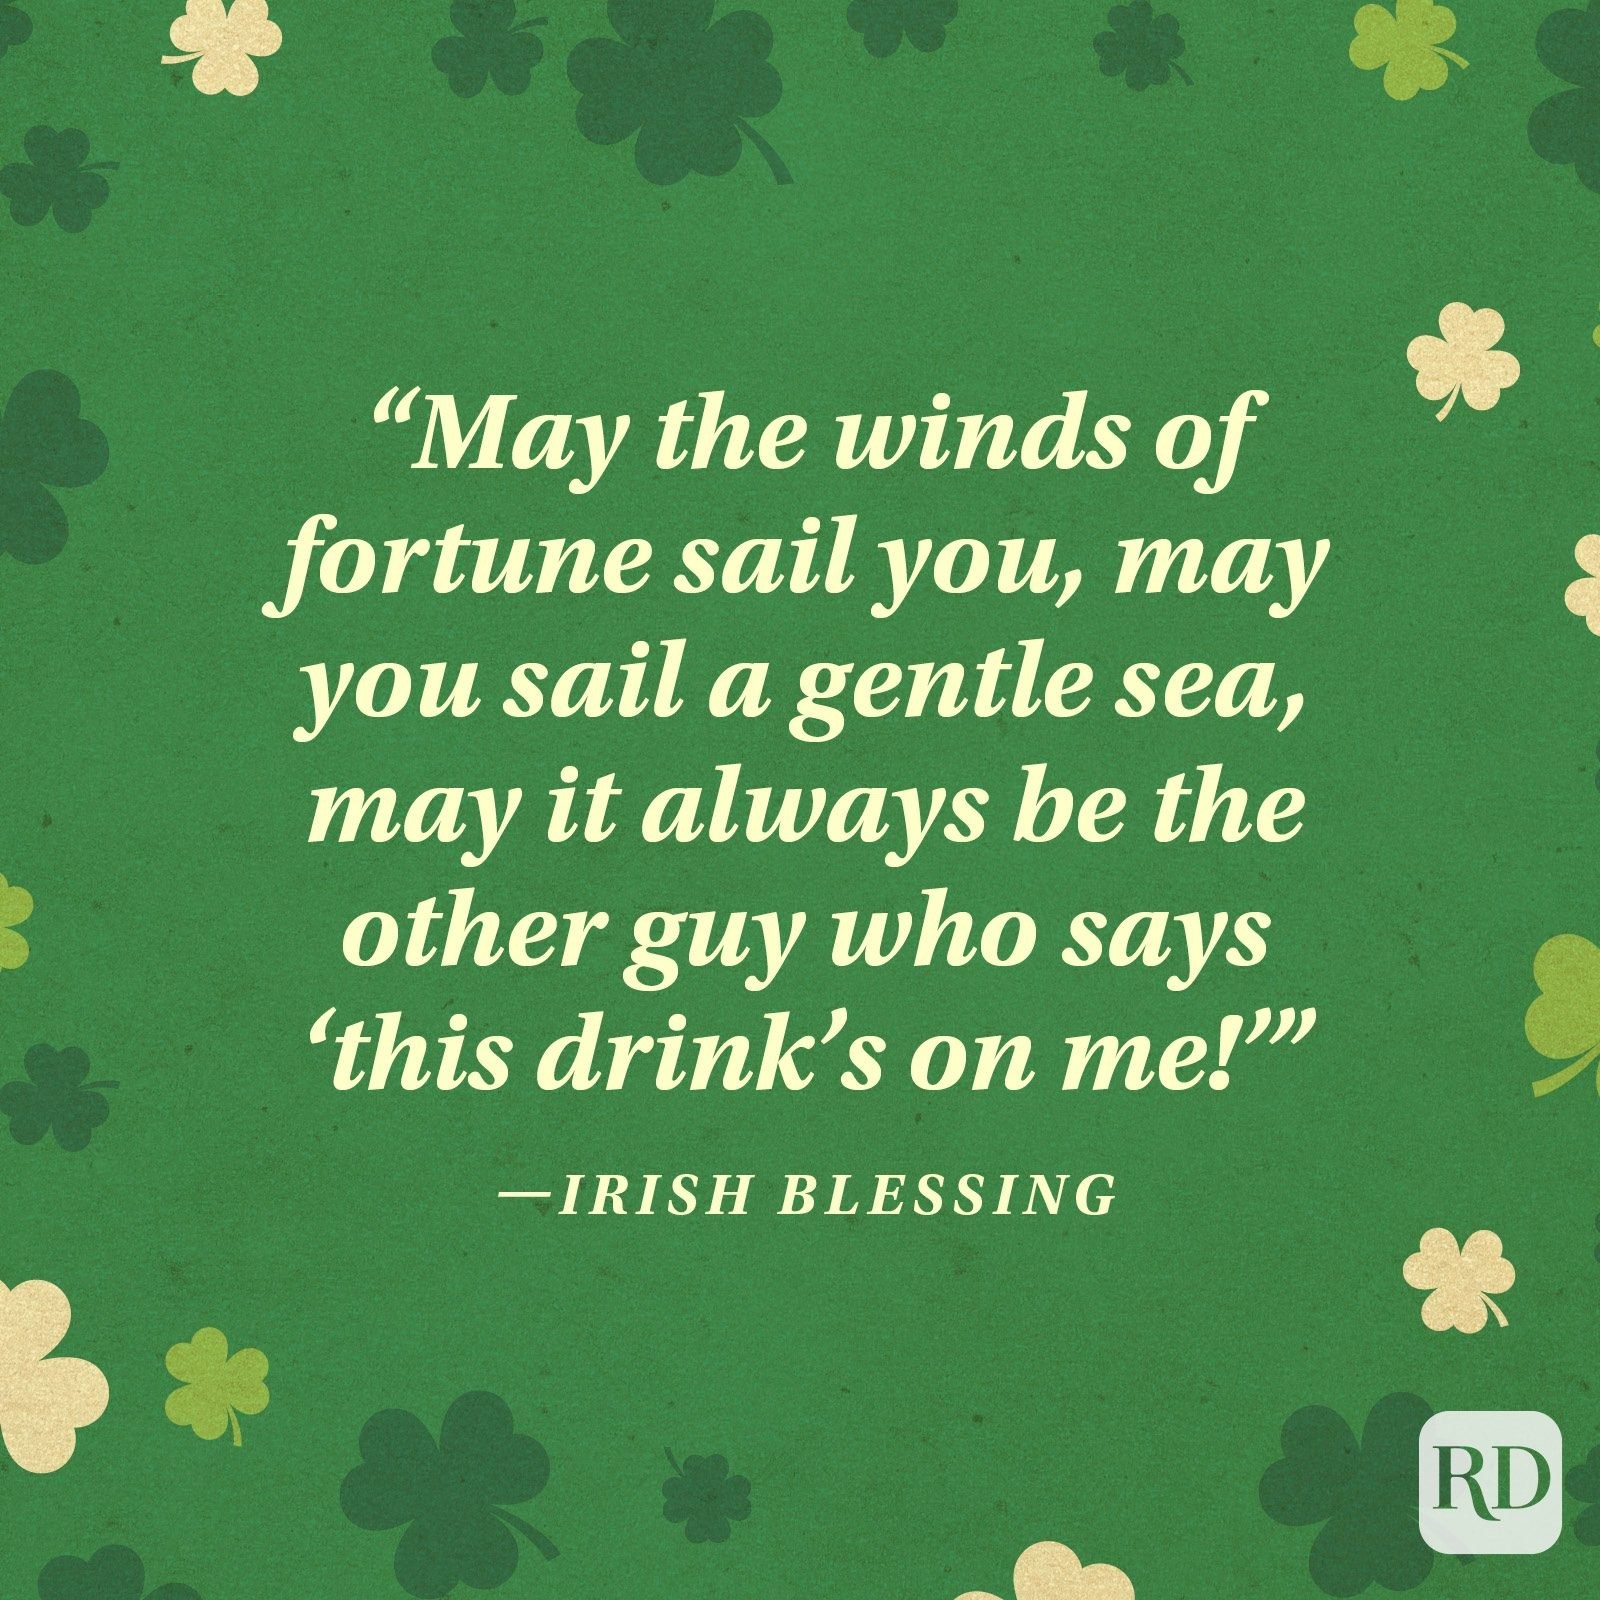 """May the winds of fortune sail you, may you sail a gentle sea, may it always be the other guy who says 'this drink's on me!'"" —Irish blessing"